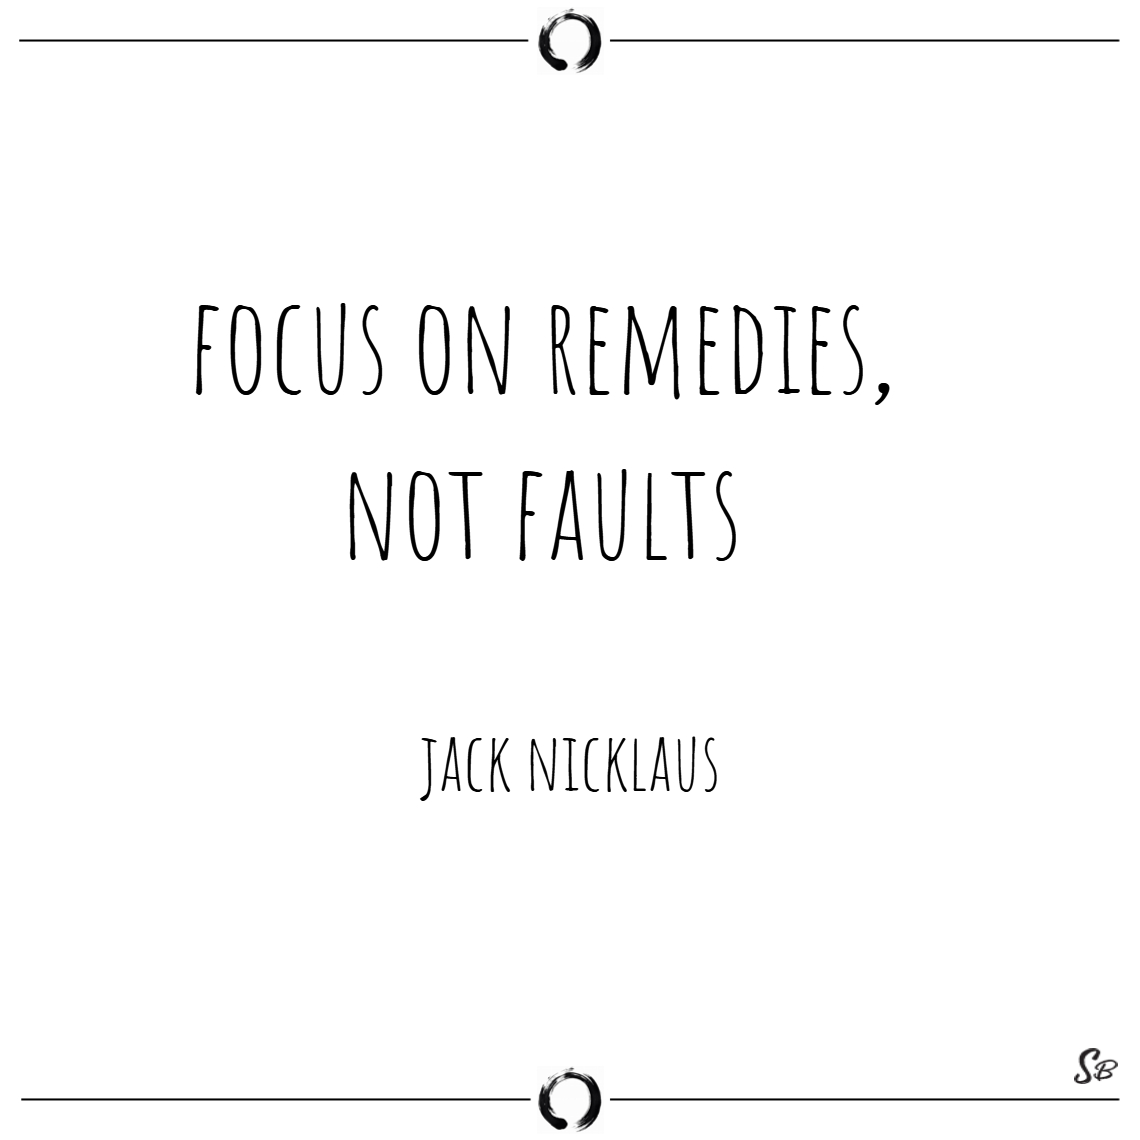 Focus on remedies, not faults. – jack nicklaus